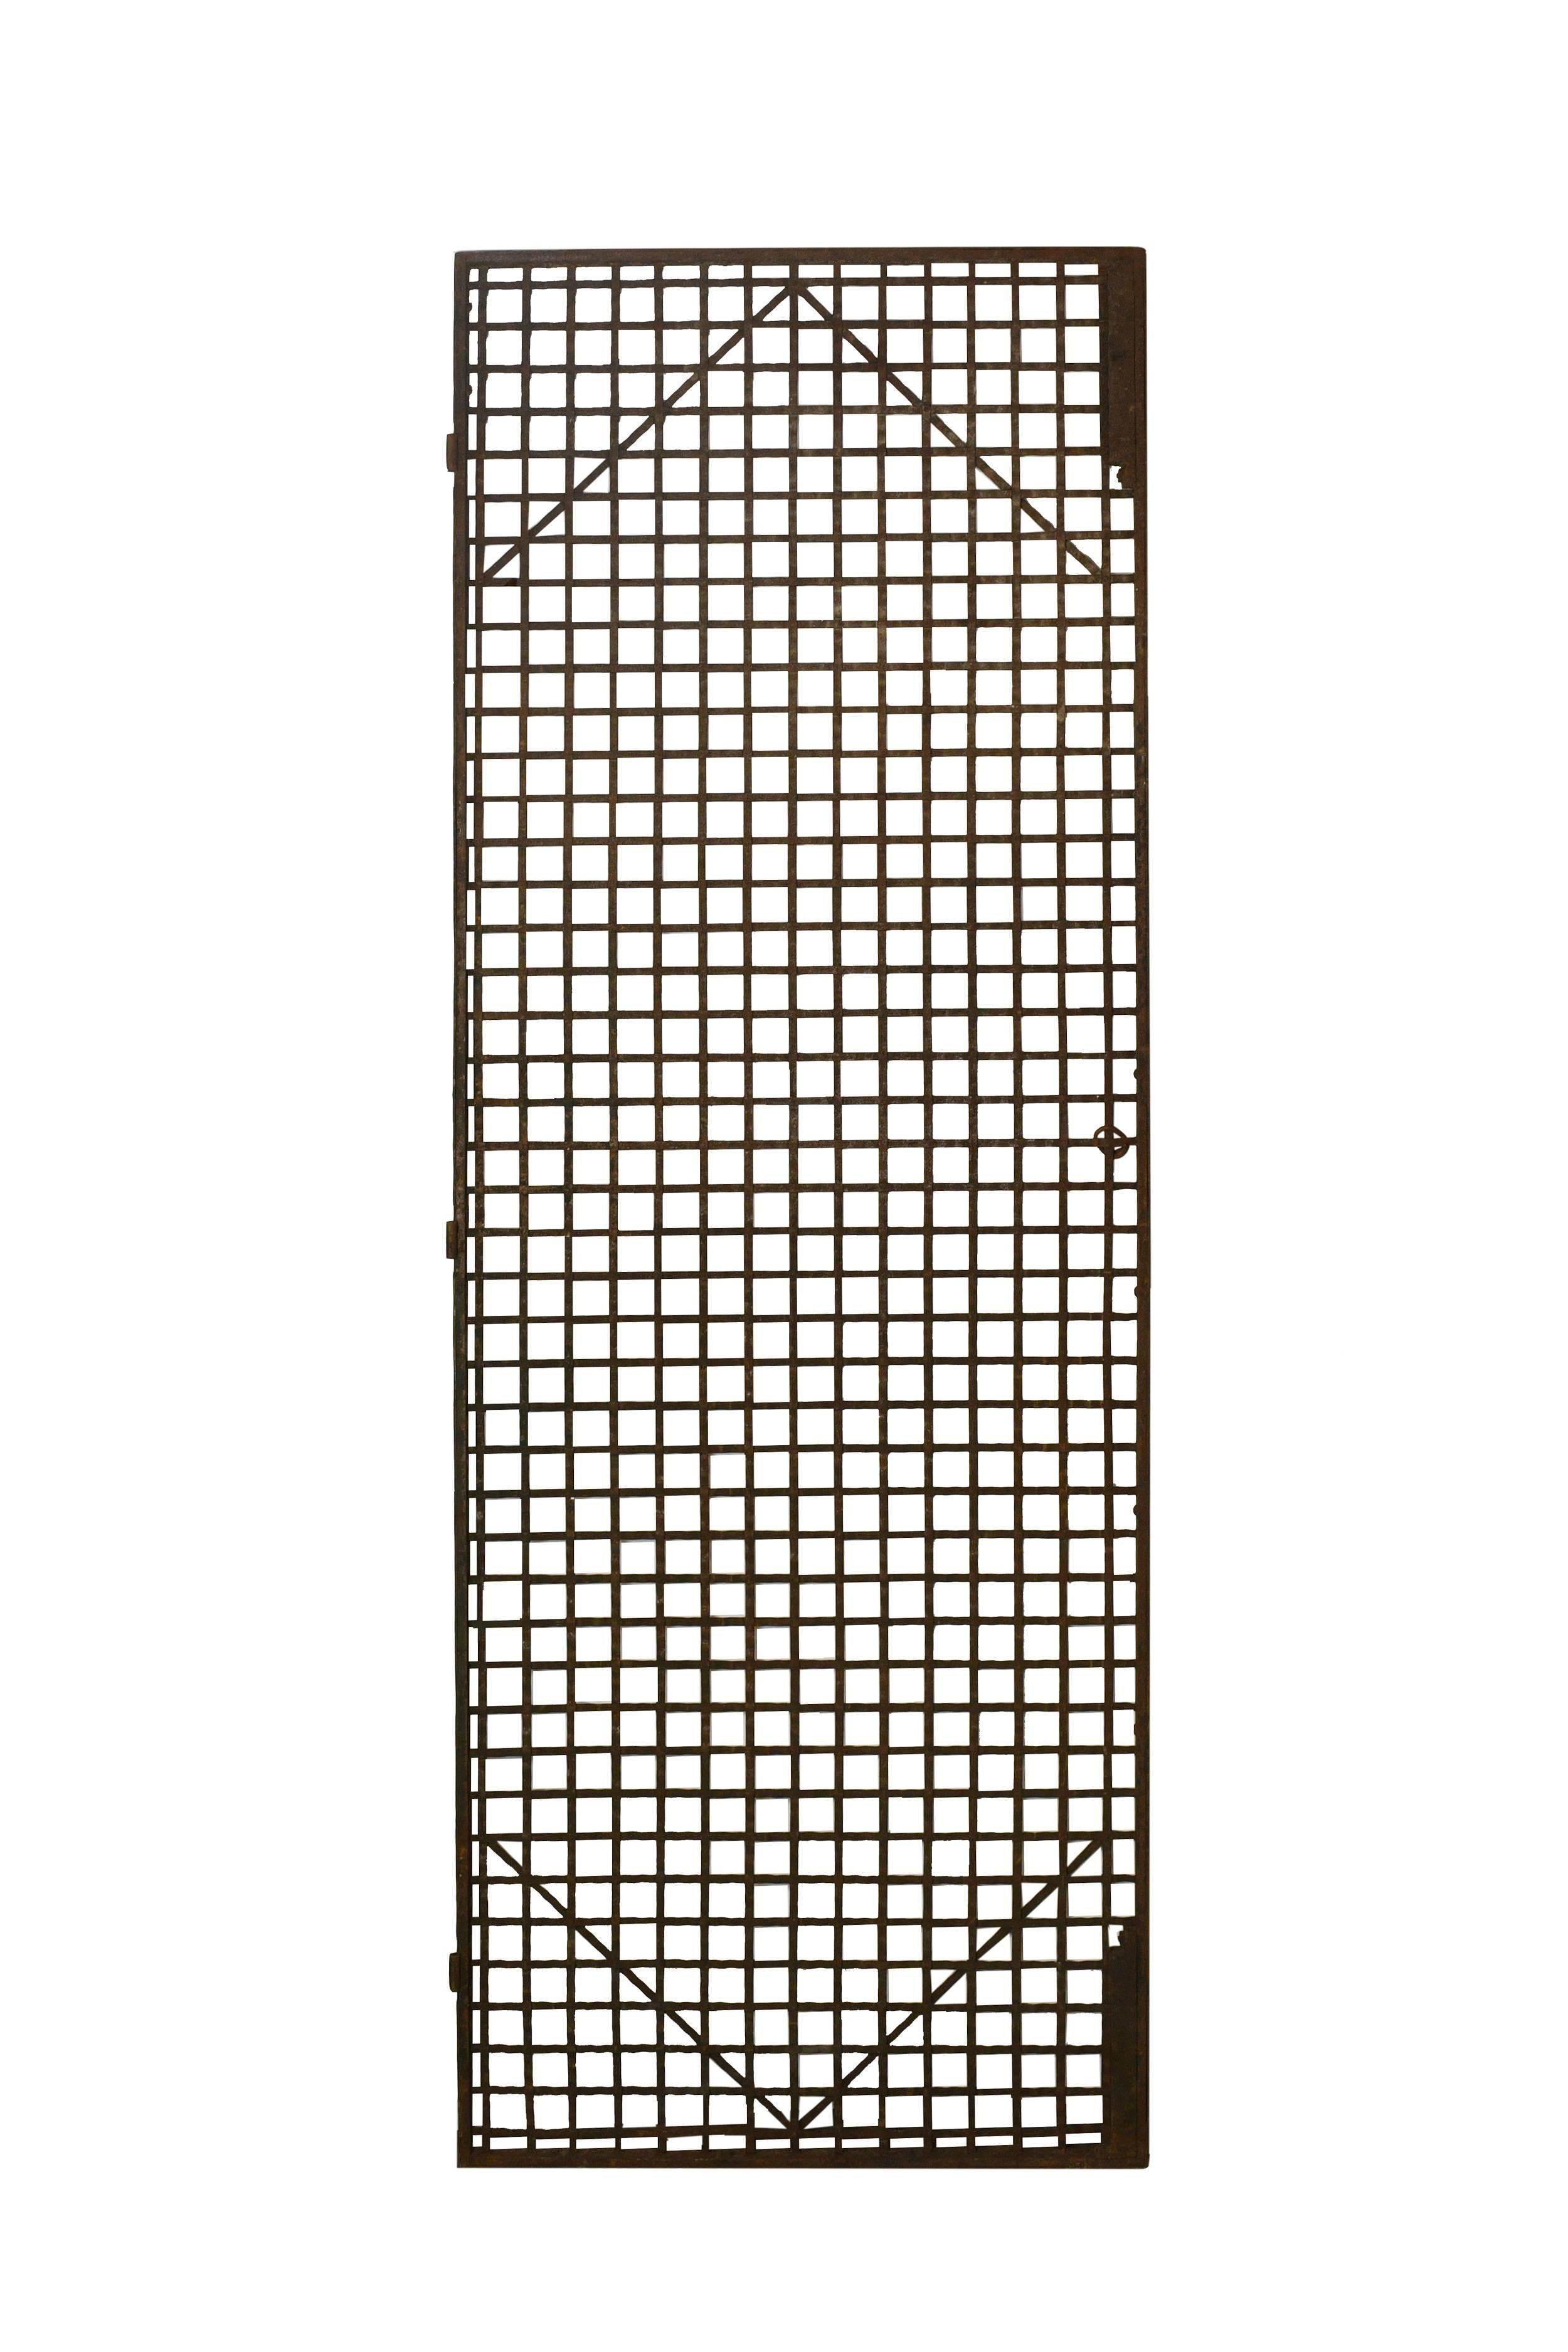 Woven Metal Elevator Cage Doors For Sale 6  sc 1 st  1stDibs & Woven Metal Elevator Cage Doors For Sale at 1stdibs